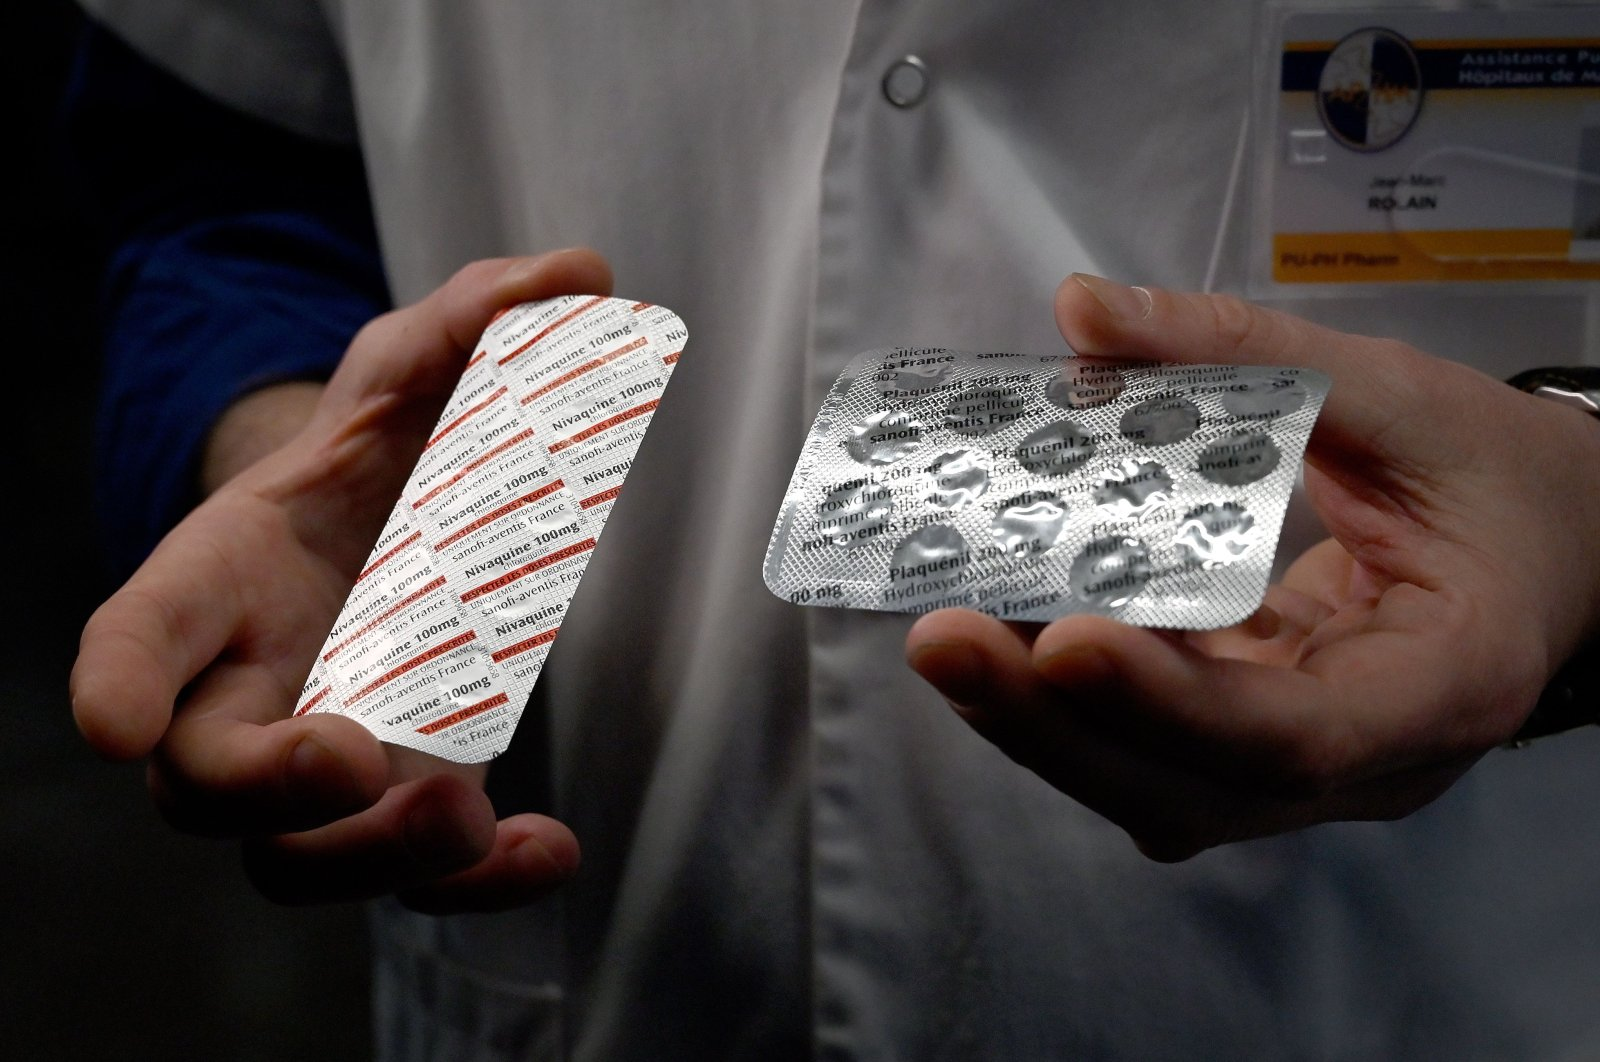 In this file photo taken on February 26, 2020, a medical staff shows at the IHU Mediterranee Infection Institute in Marseille, packets of a Nivaquine, tablets containing chloroquine and Plaqueril, tablets containing hydroxychloroquine, drugs that have shown signs of effectiveness against coronavirus. (AFP Photo)